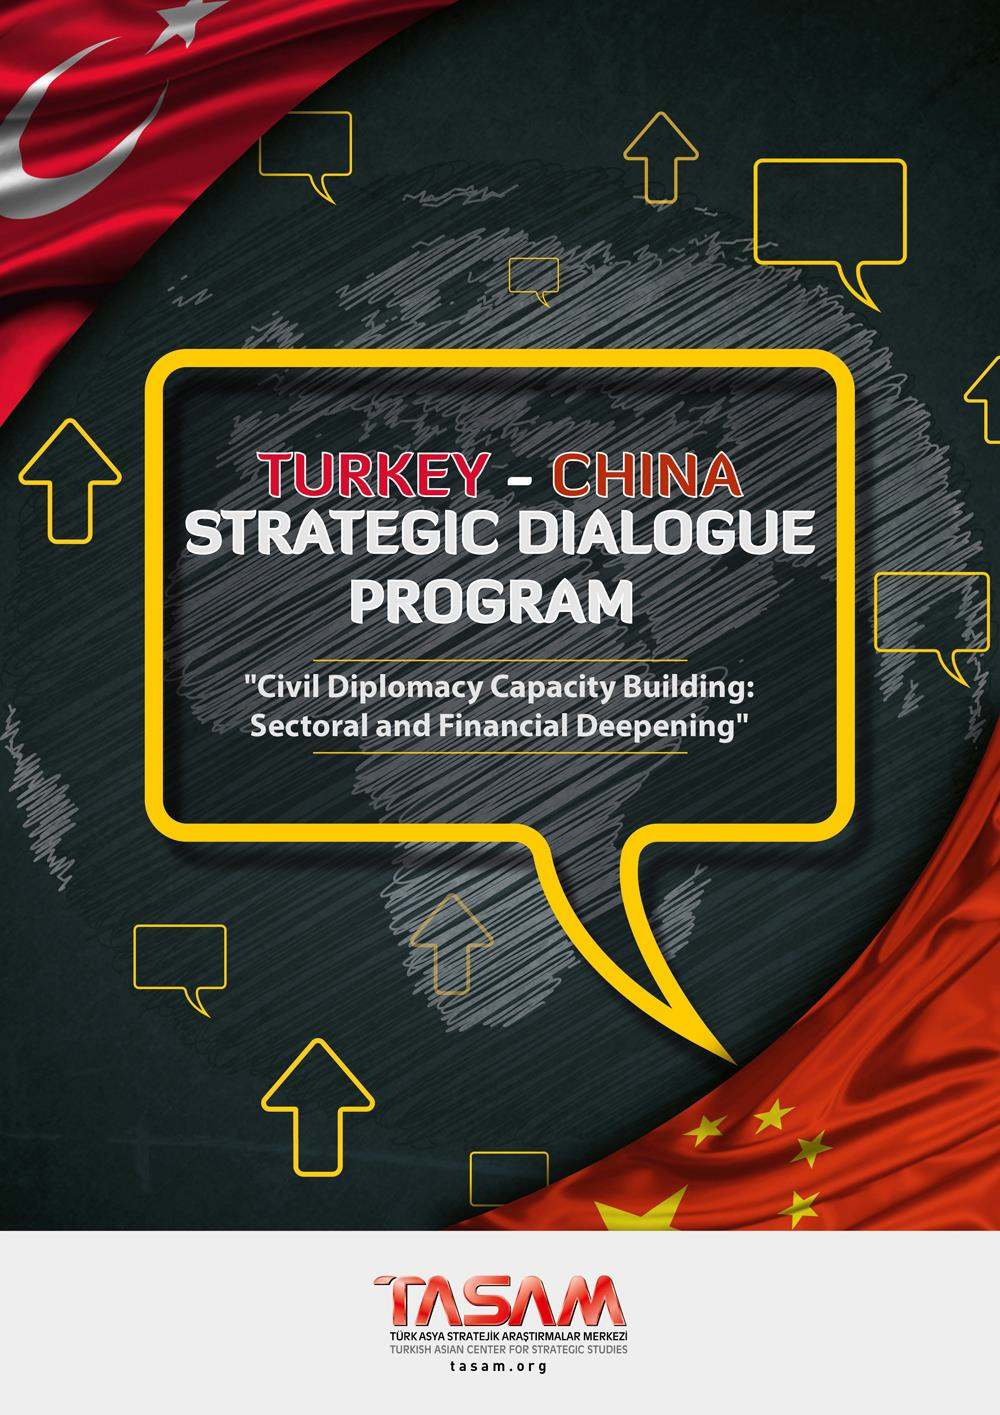 Turkey - China Strategic Dialogue Program